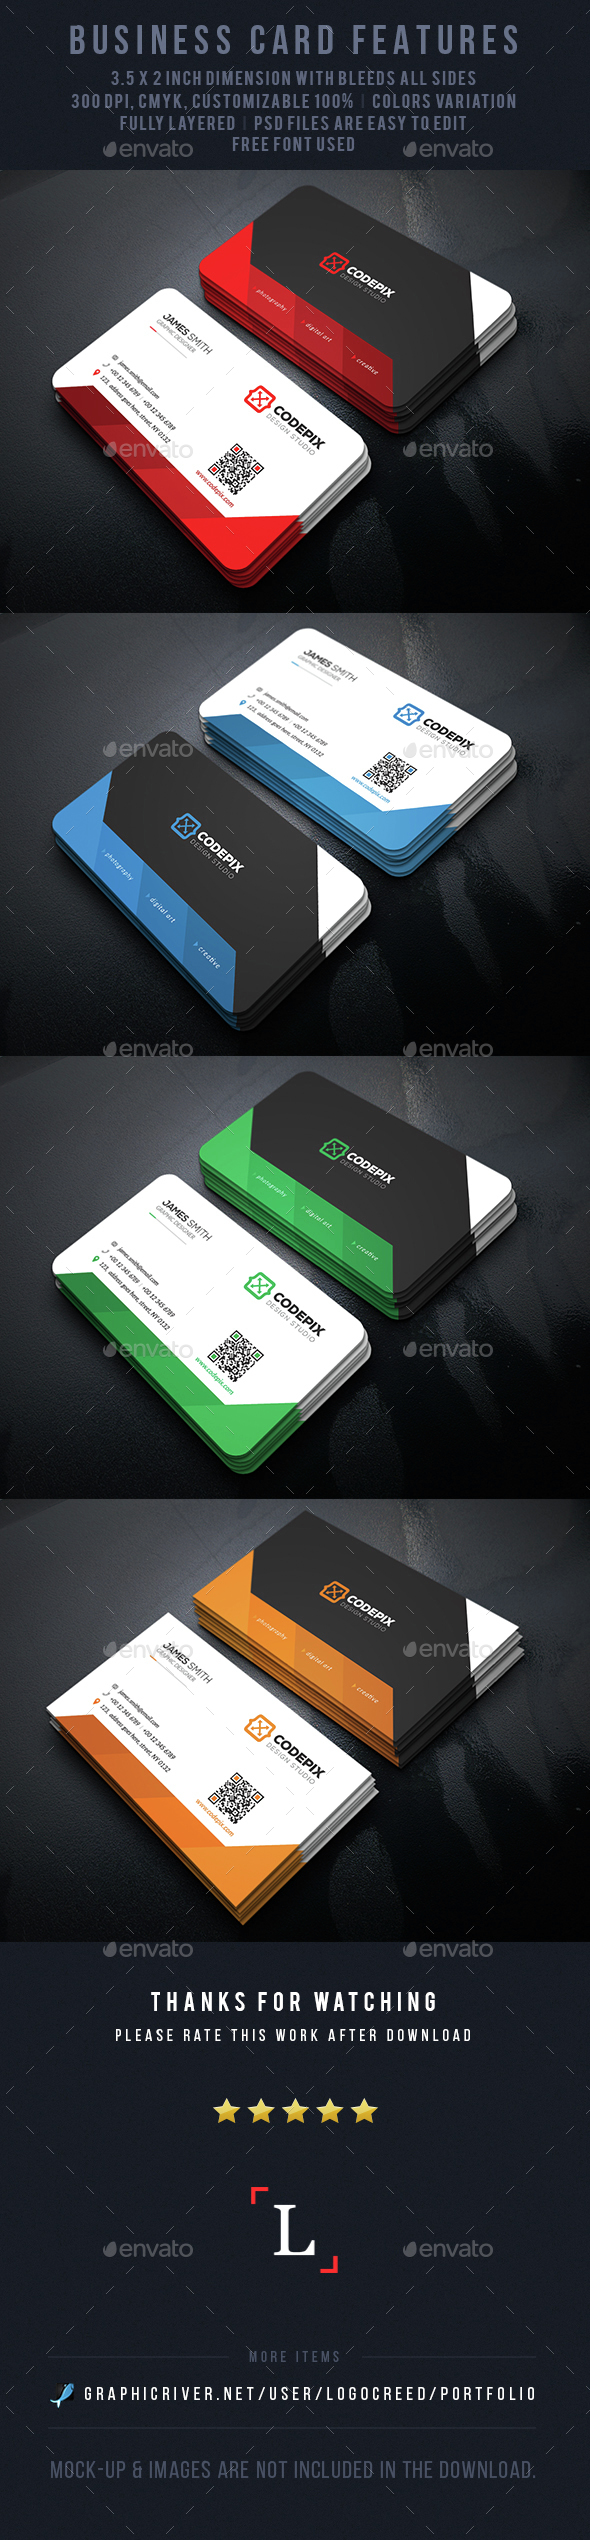 Shade Corporate Business Card - Business Cards Print Templates